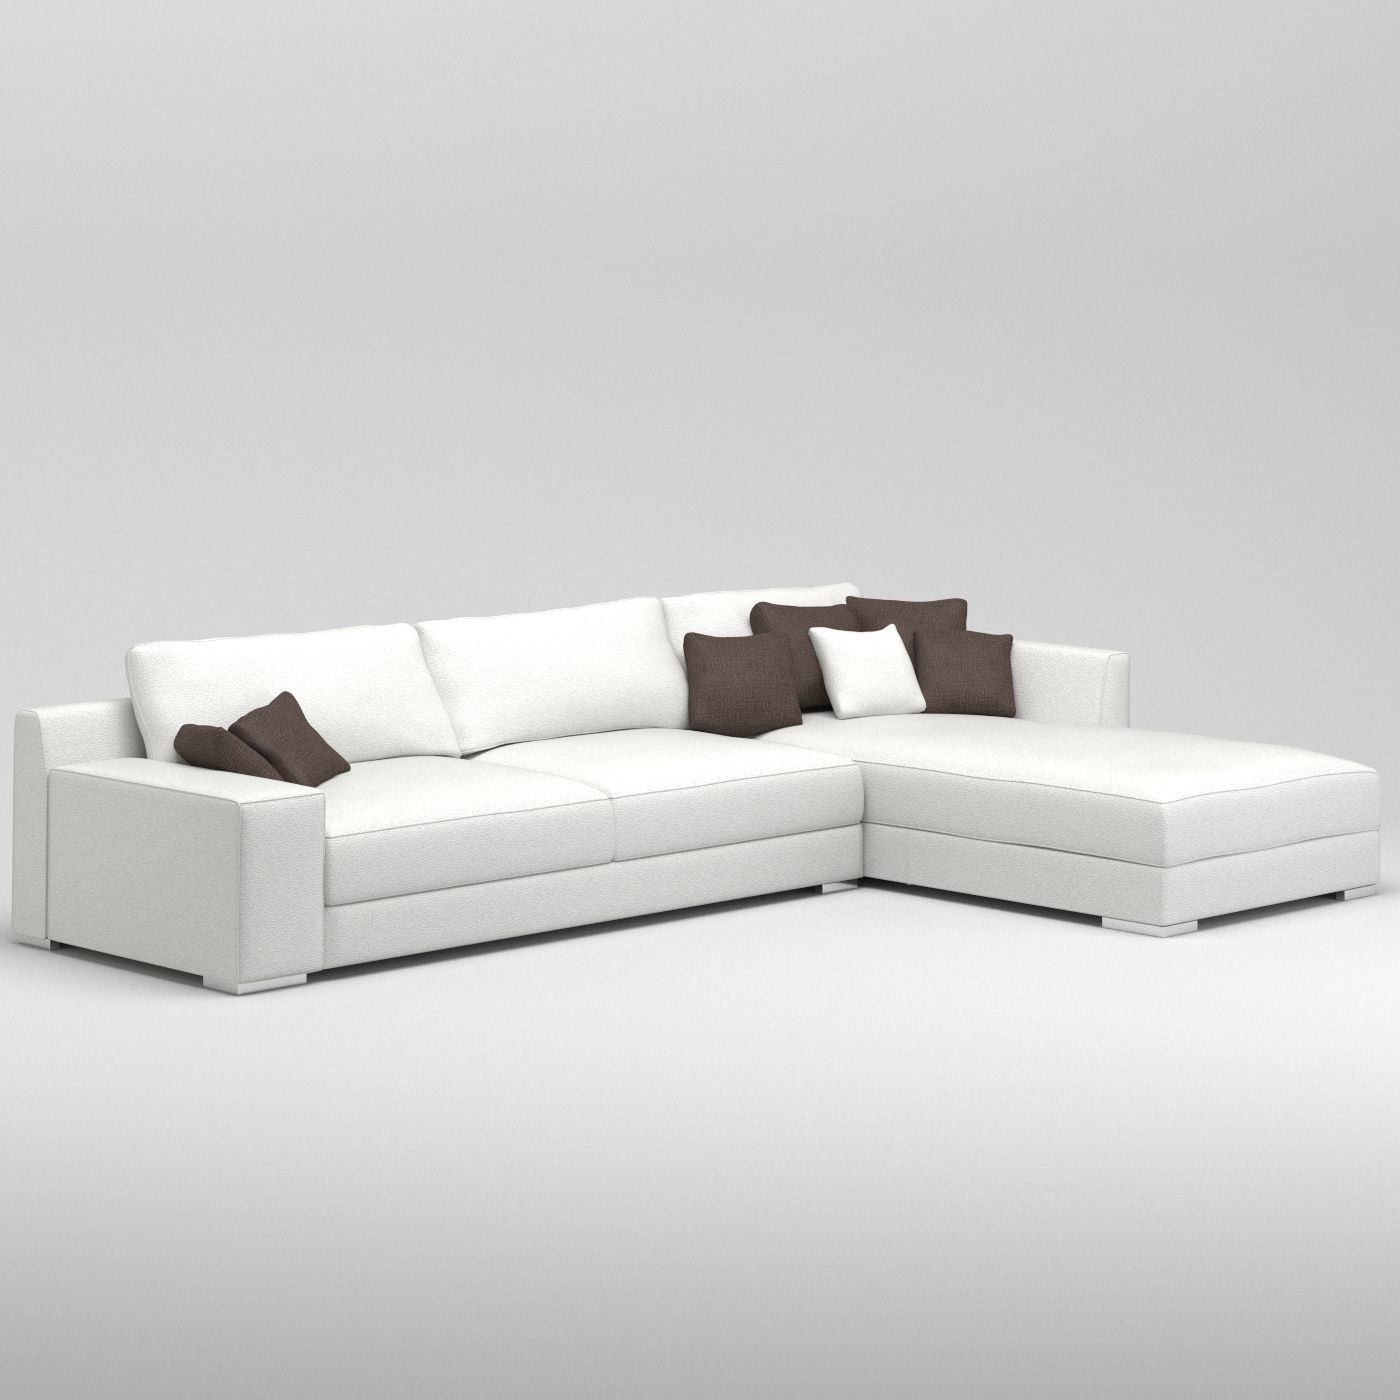 Furniture : Couchtuner Queen Sugar Sectional Sofa Greenville Sc With Regard To Sectional Sofas In Greenville Sc (View 6 of 10)